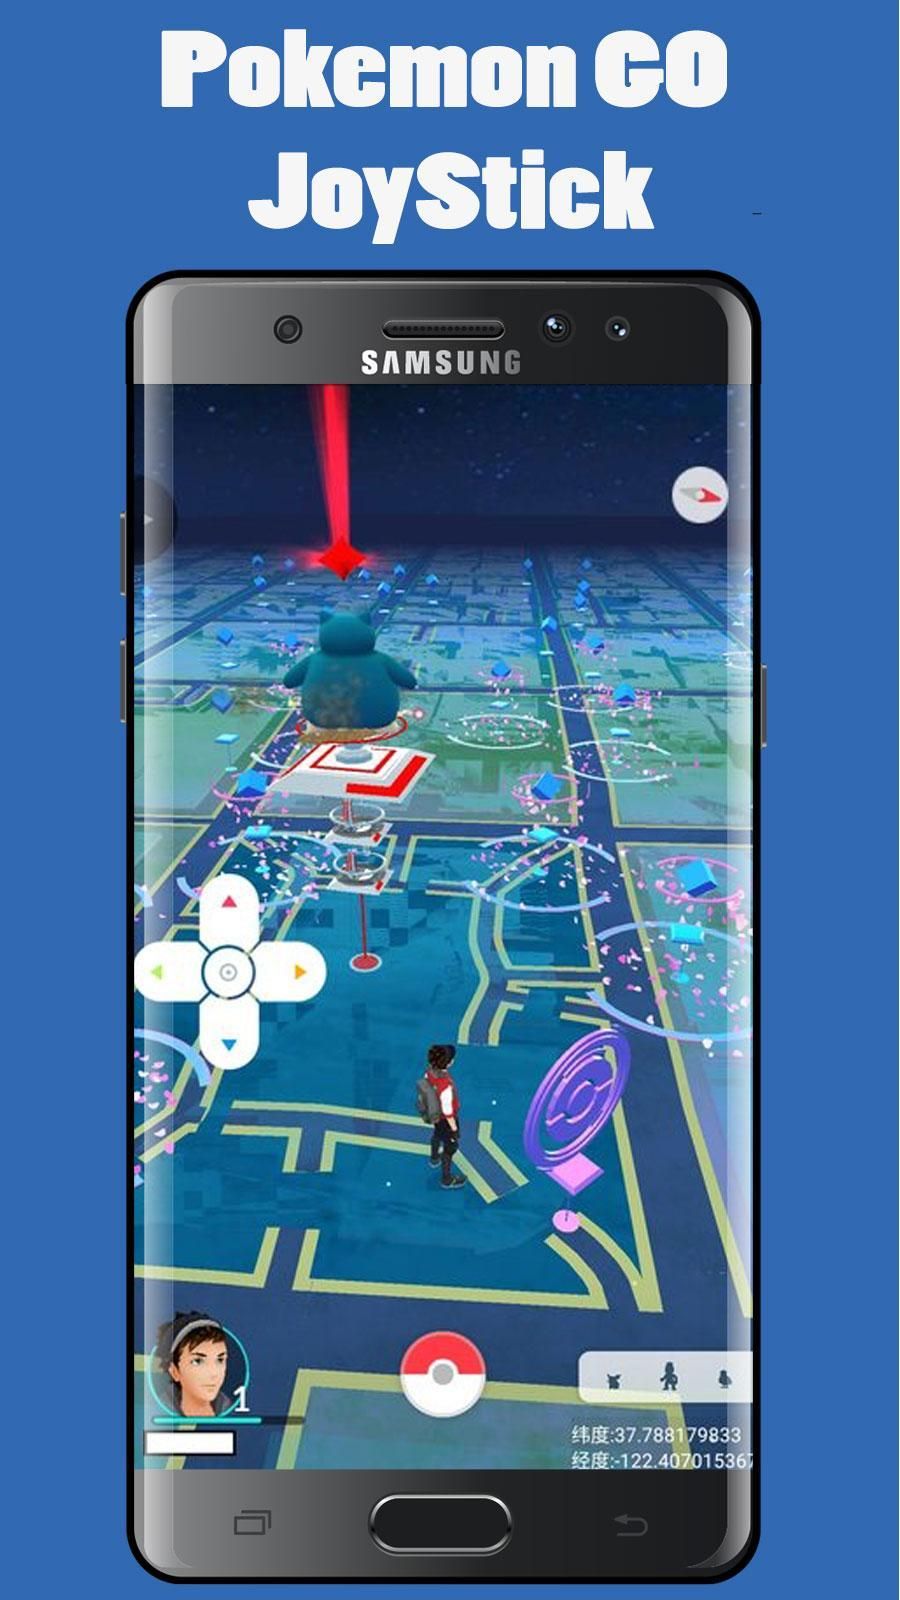 pokemon go download with joystick